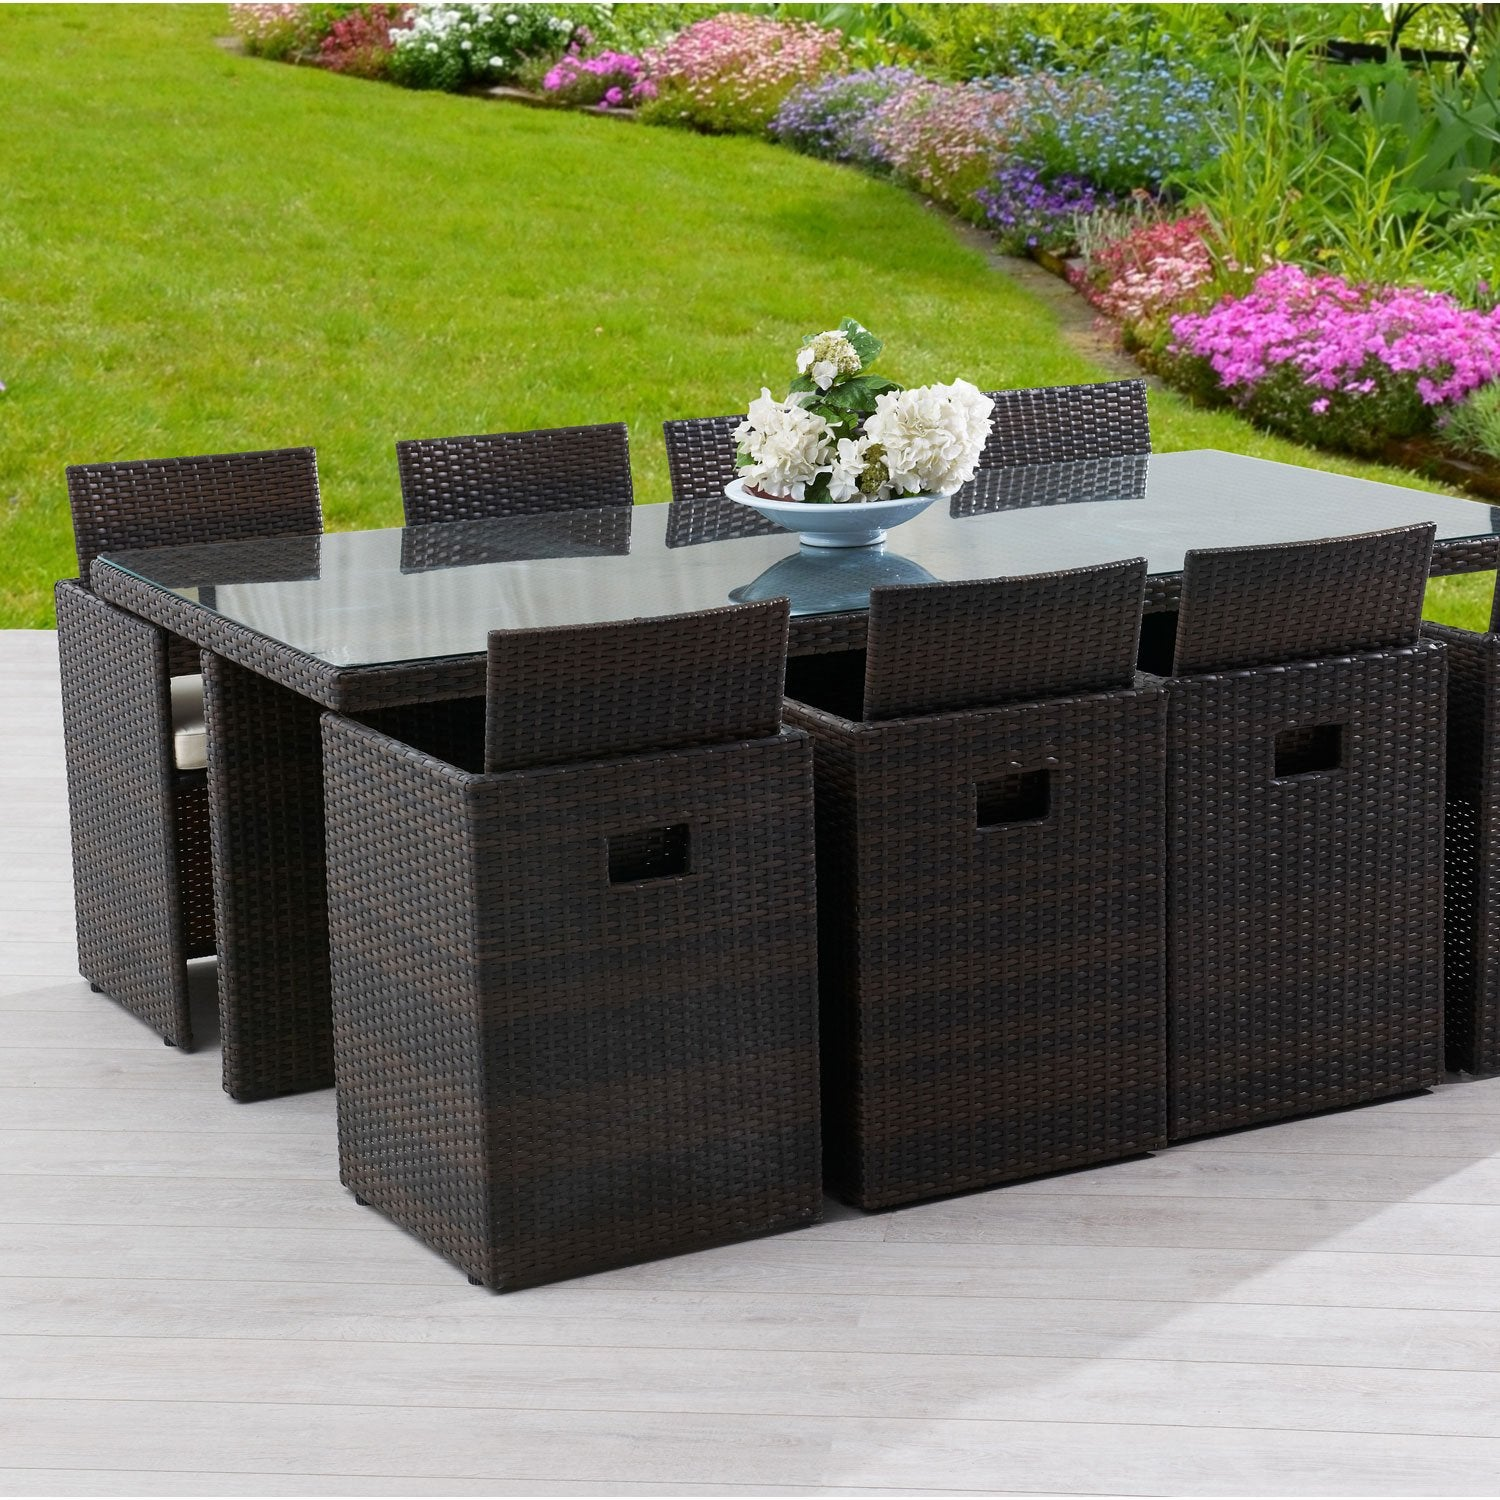 Salon de jardin encastrable r sine tress e marron 1 table - Salon de jardin moderne pas cher ...